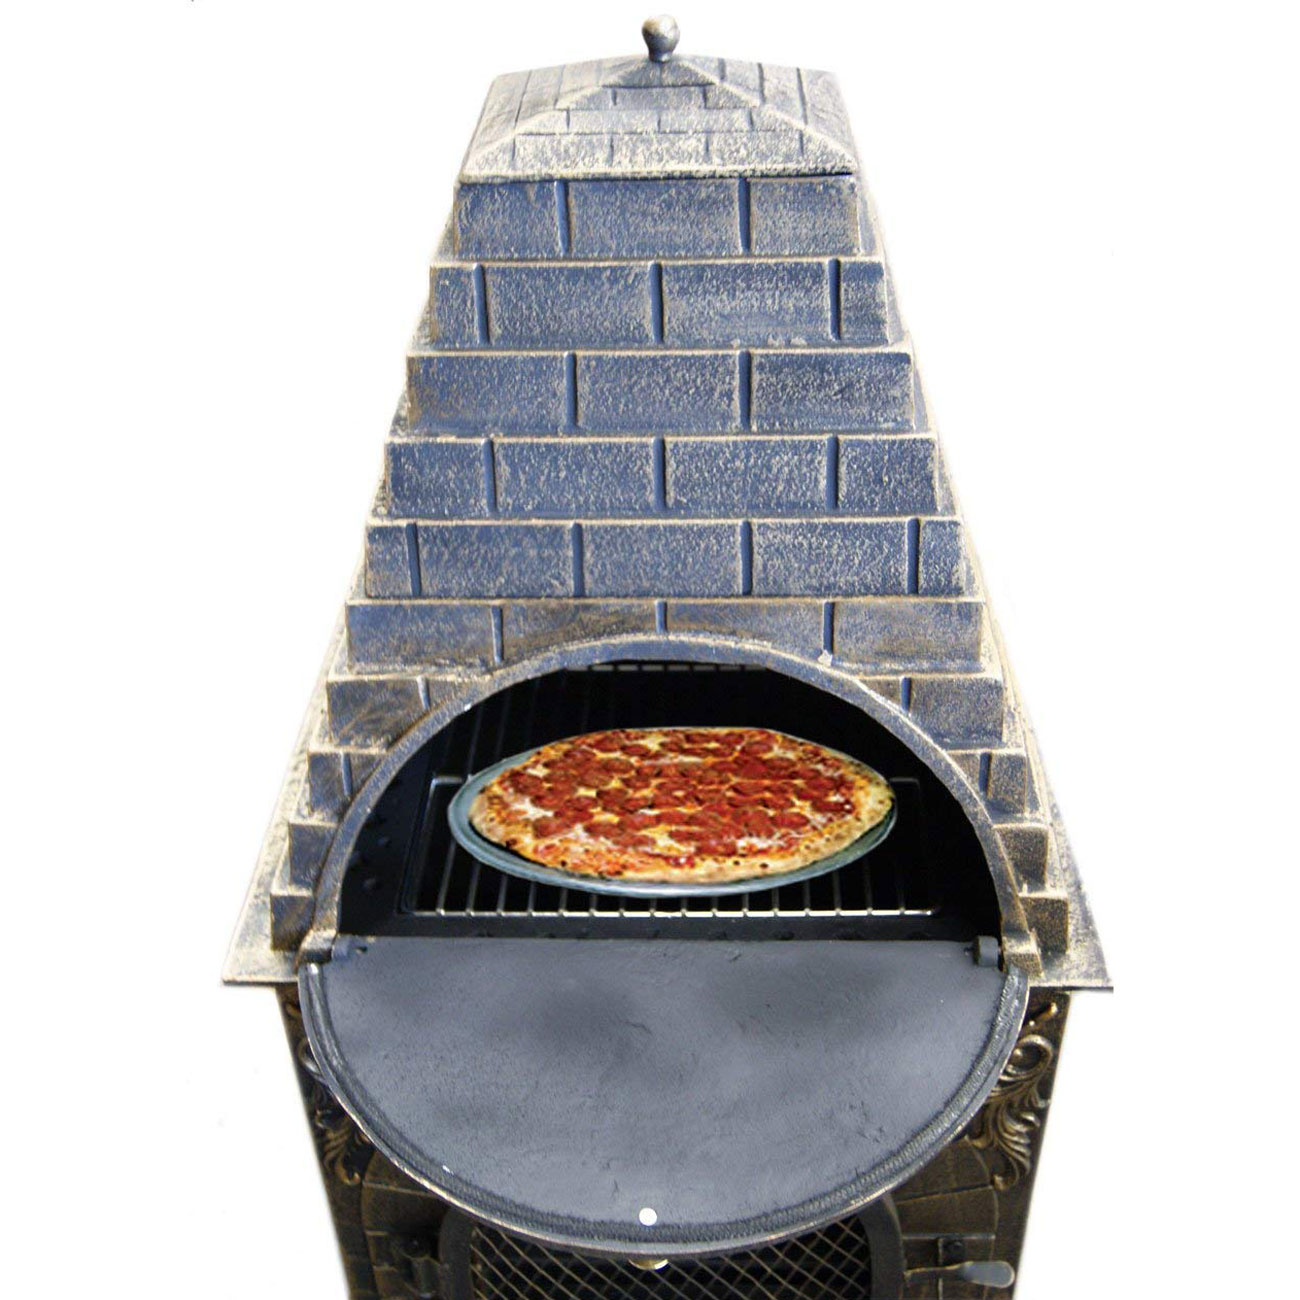 Aztec Allure Wood Fired Pizza Oven Grill And Fireplace